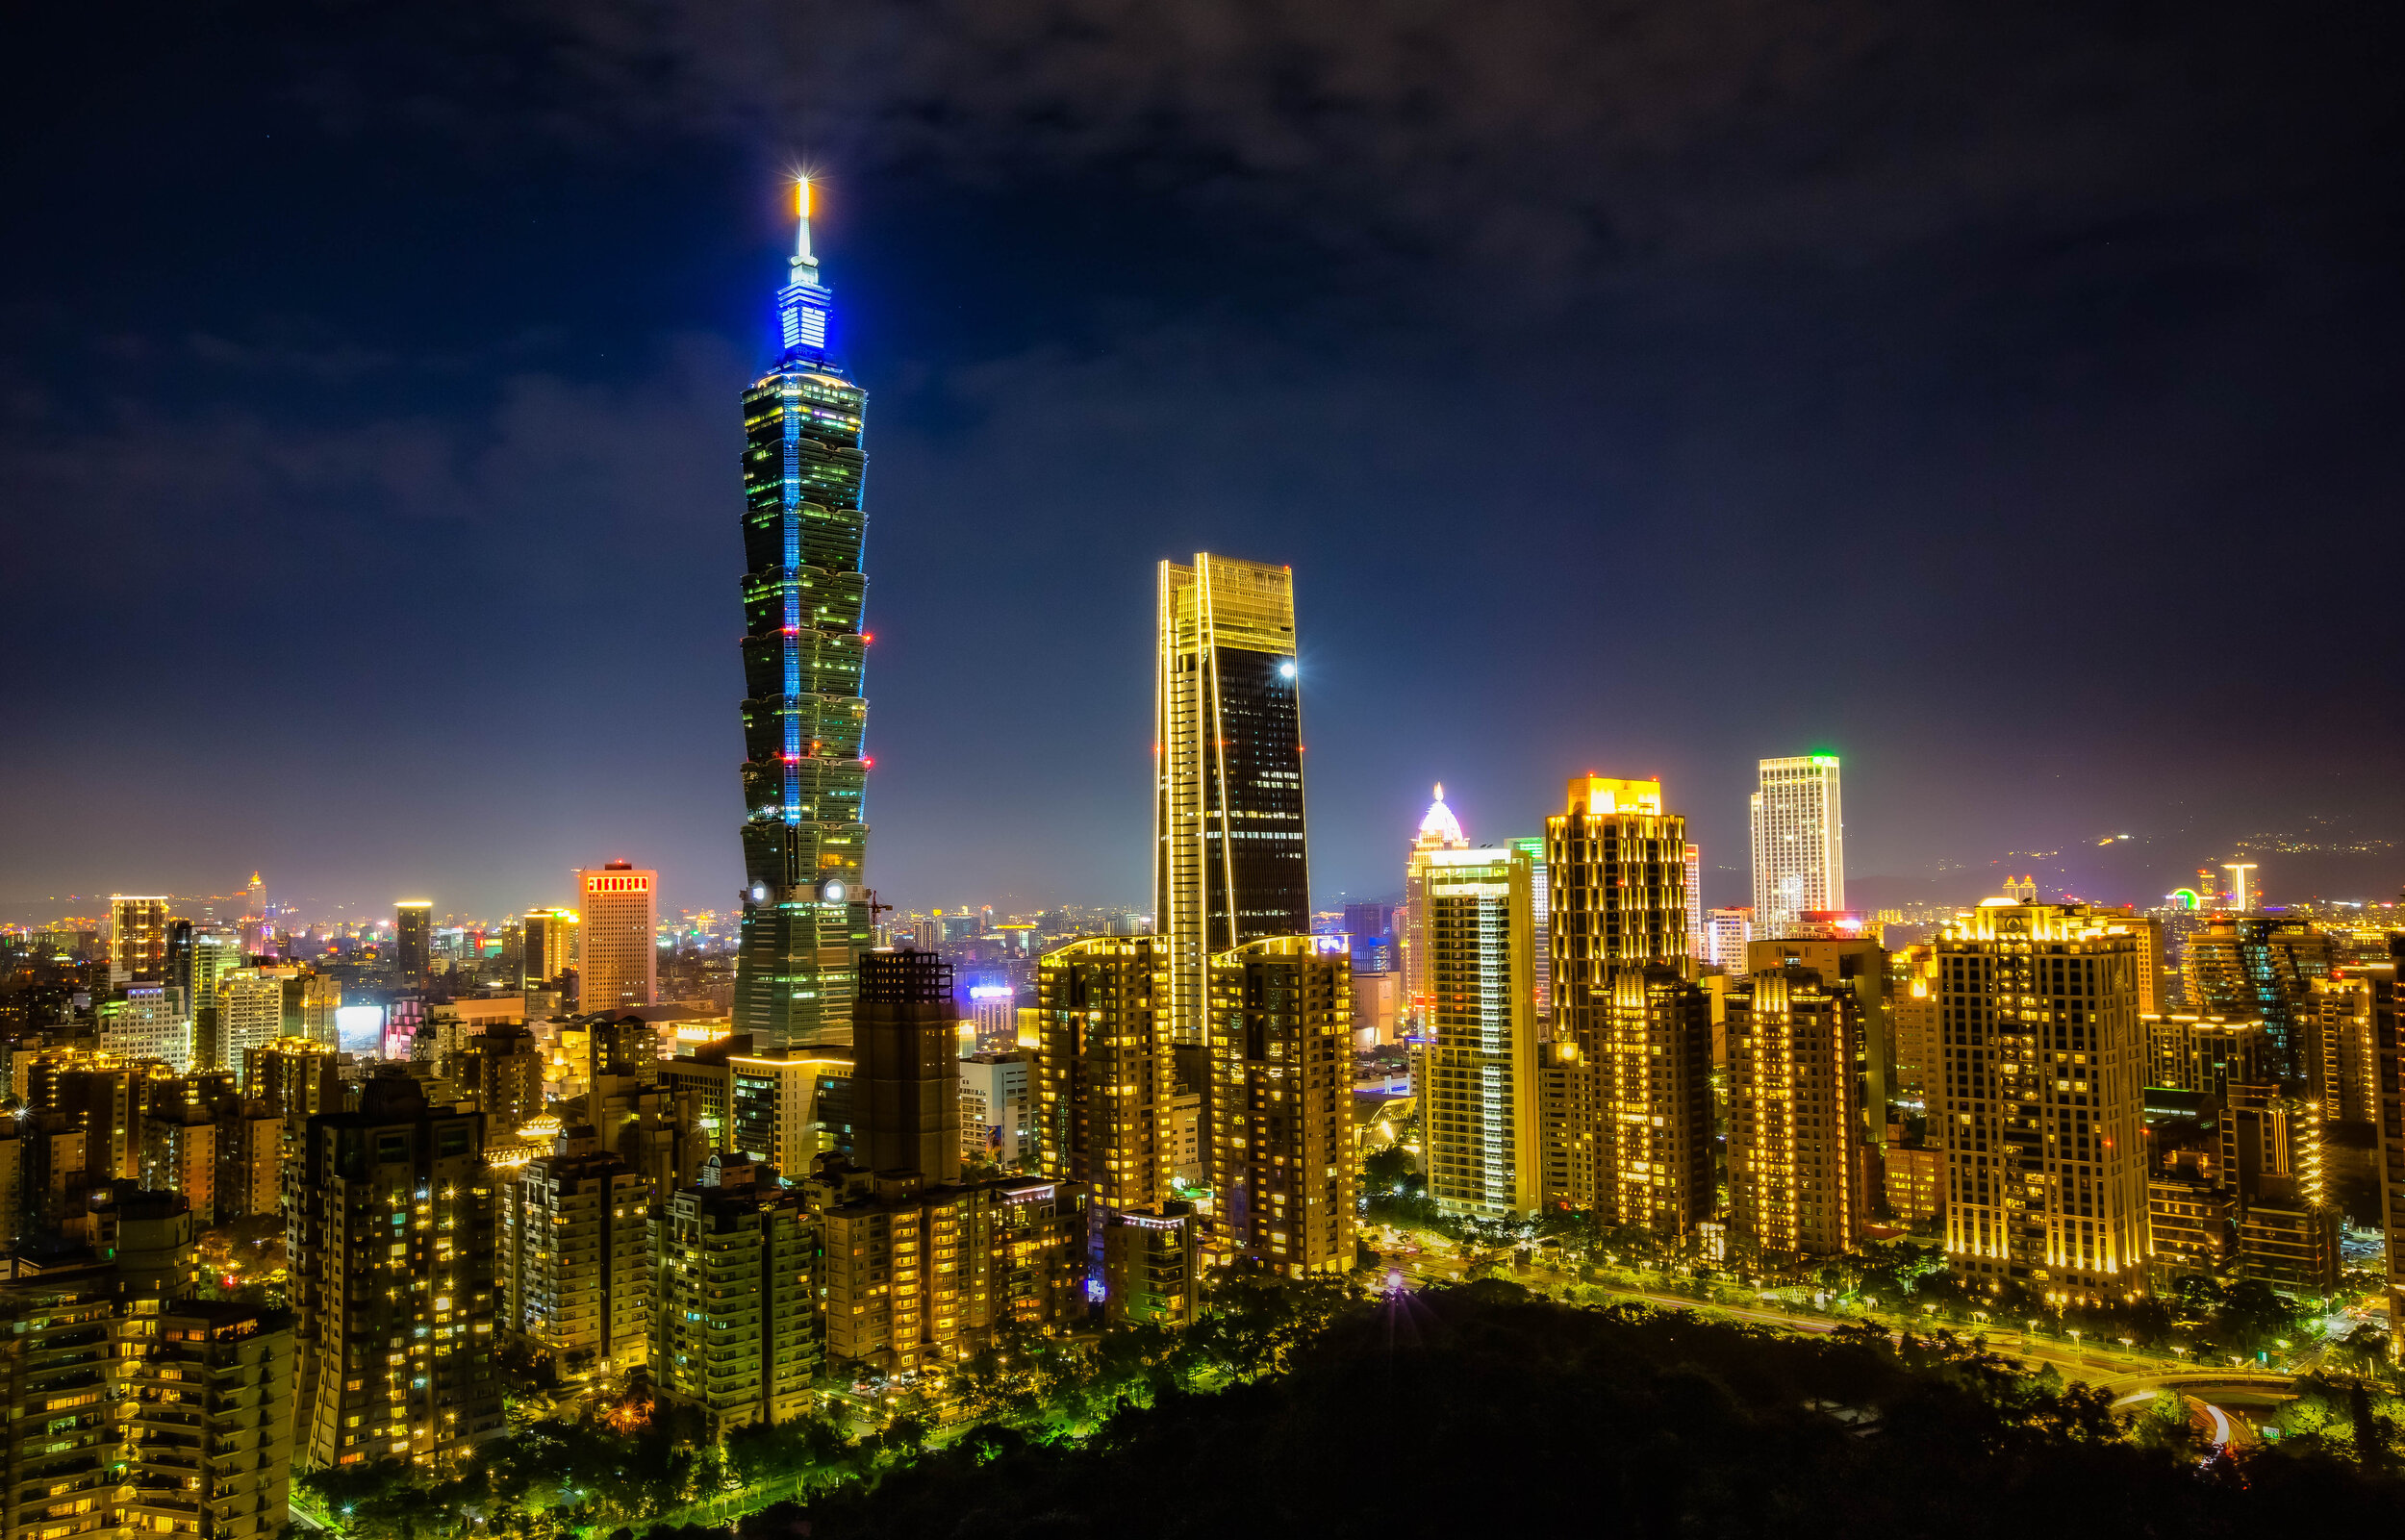 Night view of the Taipei cityscape from Elephant Mountain.